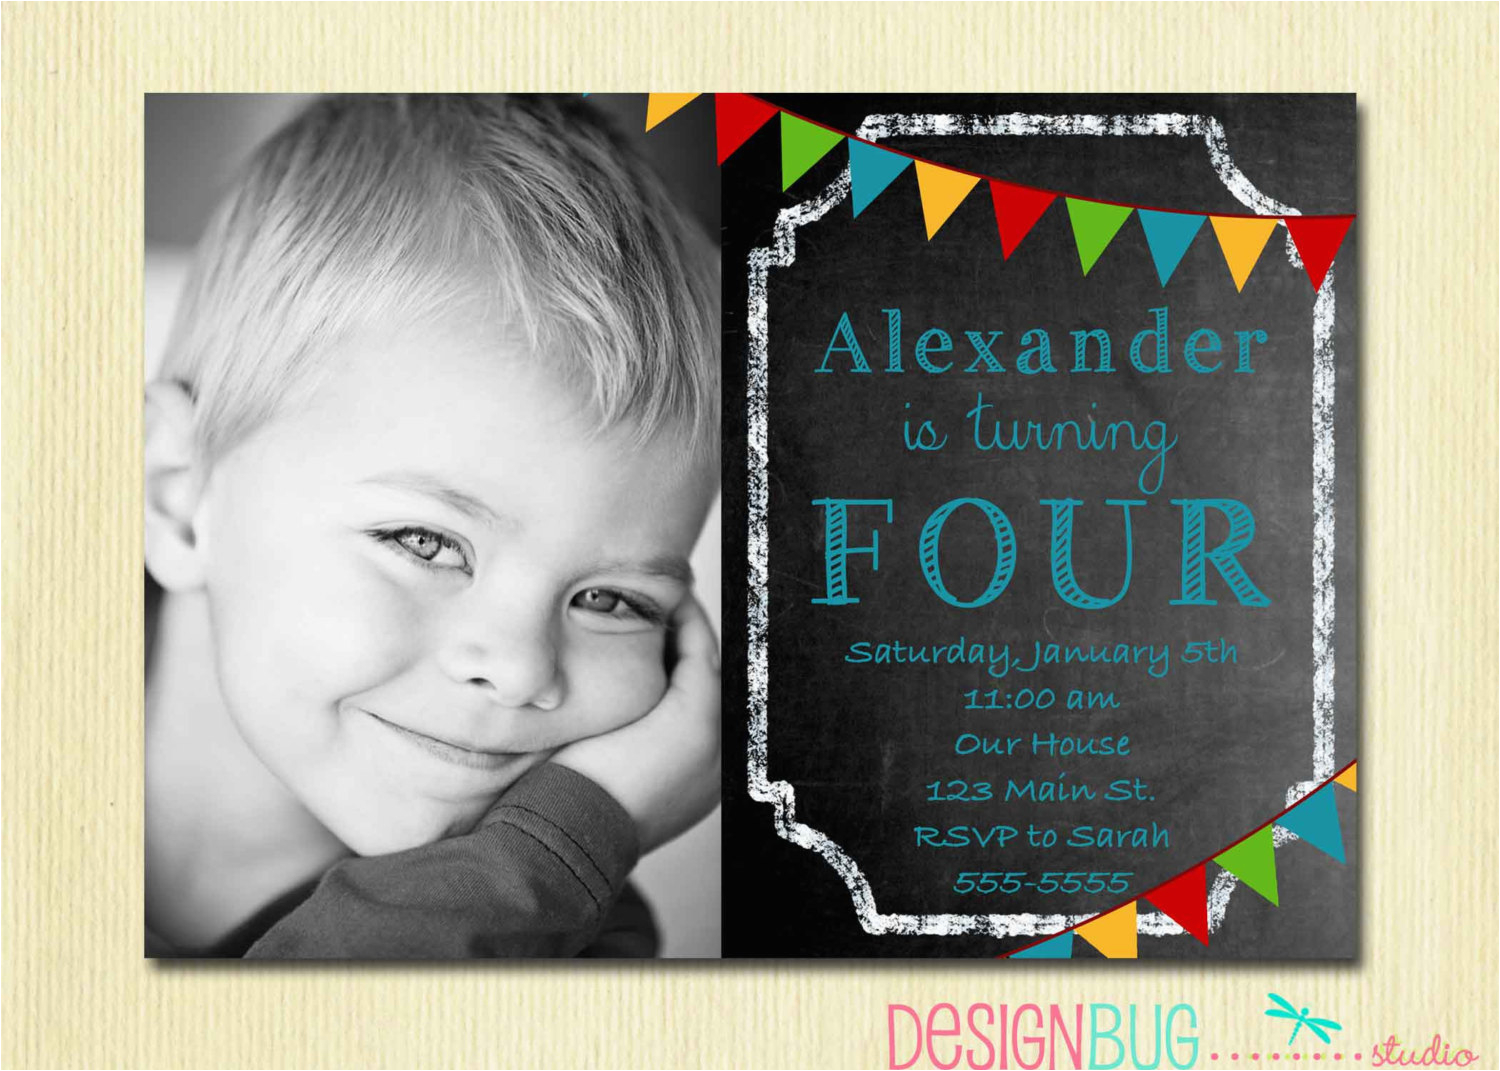 Birthday Invitation Wording For 3 Year Old Boy Boys Chalkboard 1 2 4